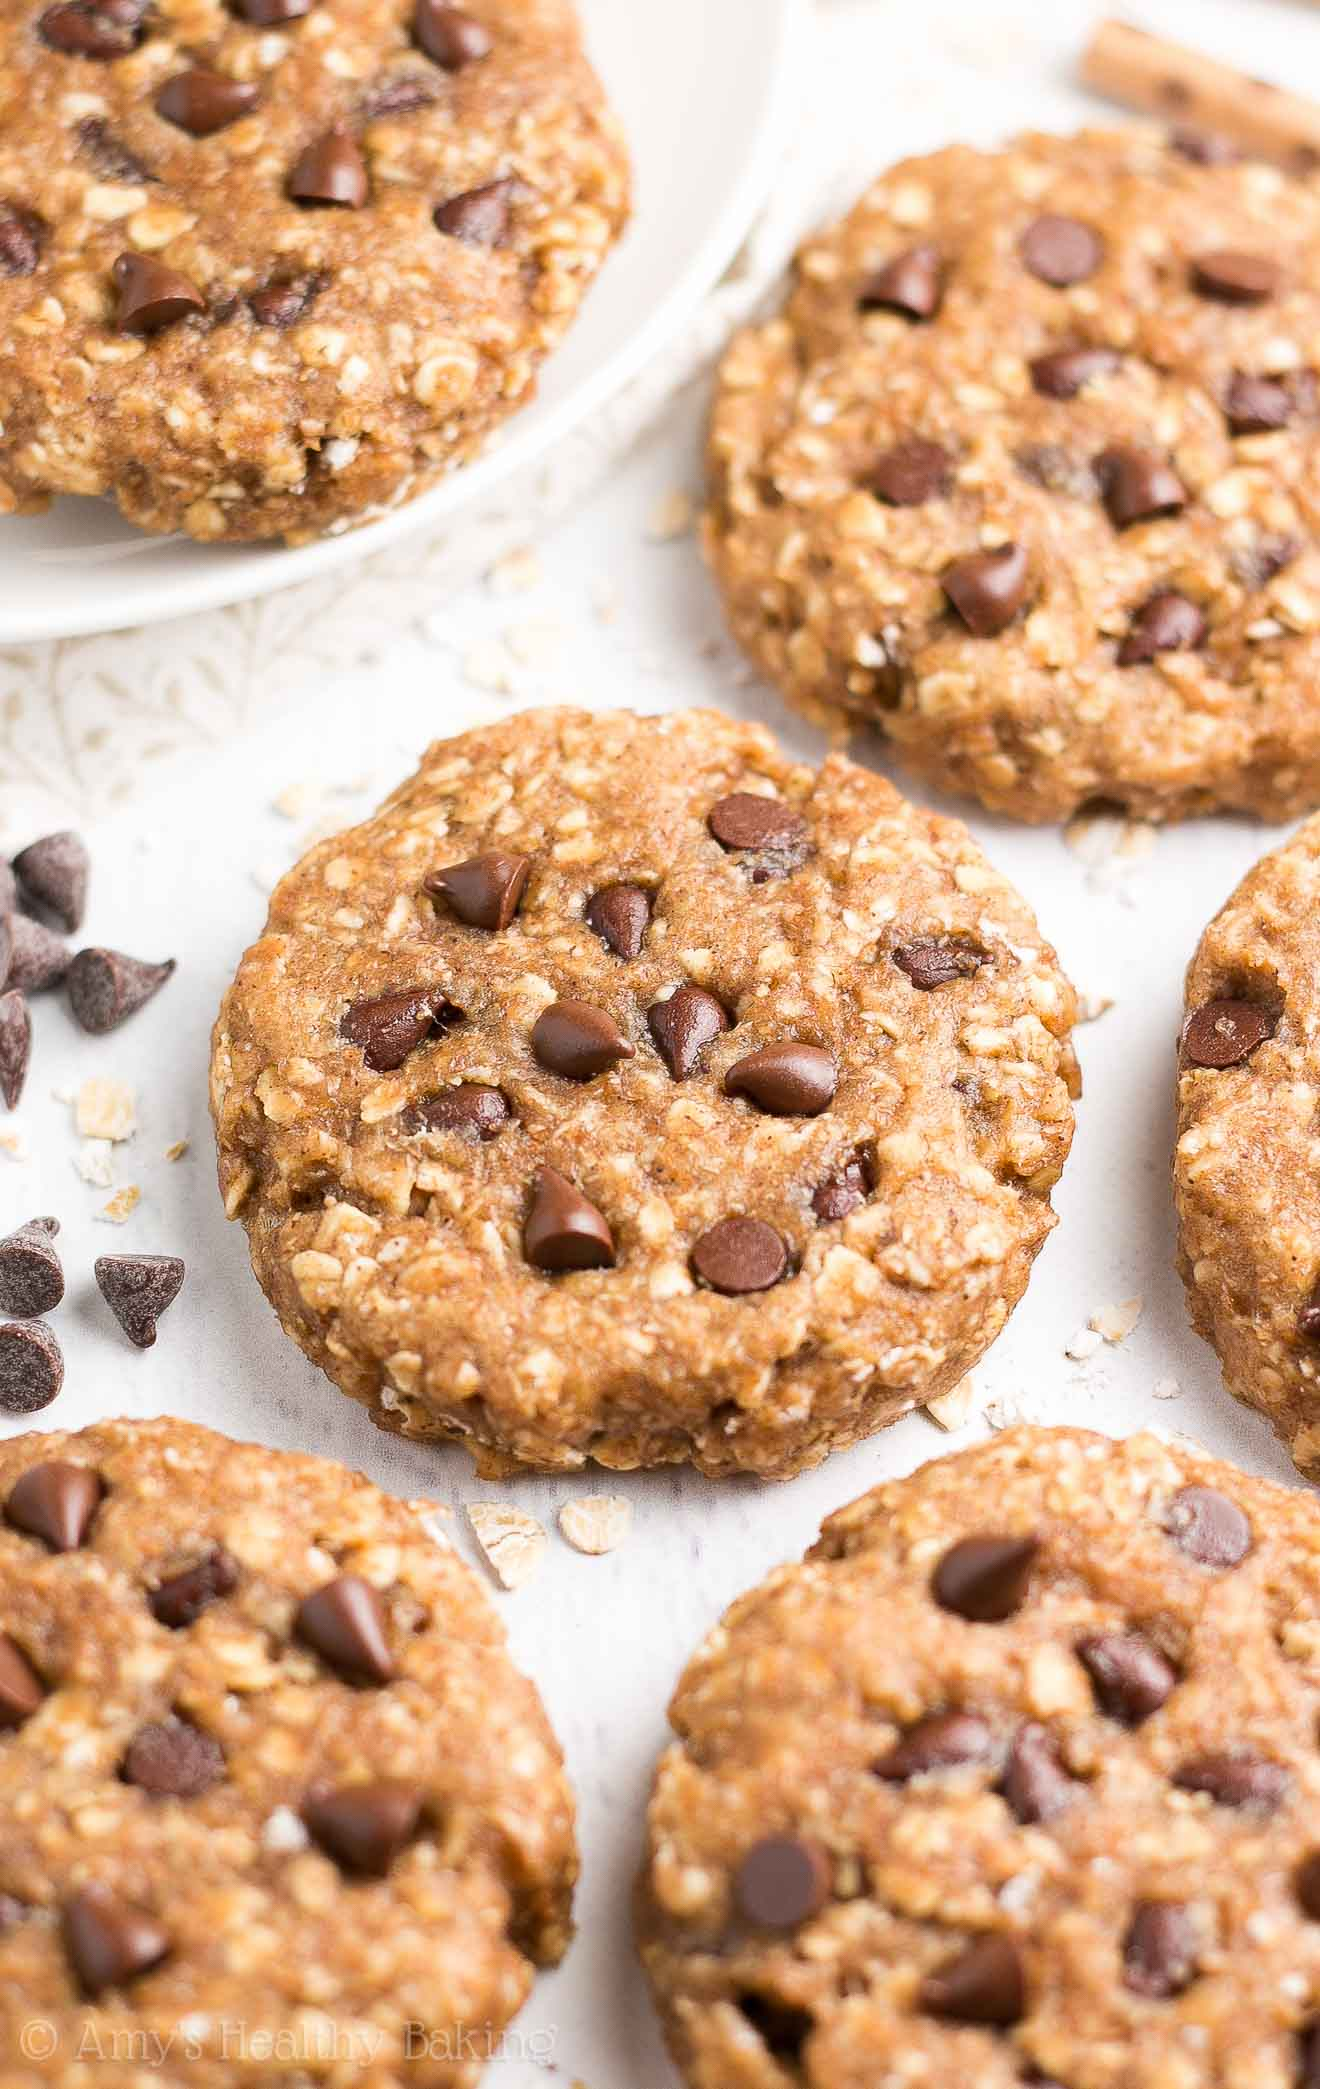 {HEALTHY!} Chocolate Chip Peanut Butter Oatmeal Breakfast Cookies -- only 91 calories! SO easy to make & they taste AMAZING! You'll never skip breakfast again! PB + chocolate = BLISS! (Plus... Totally kid-friendly & freezer-friendly too!) #recipe #healthy #cleaneating #glutenfree